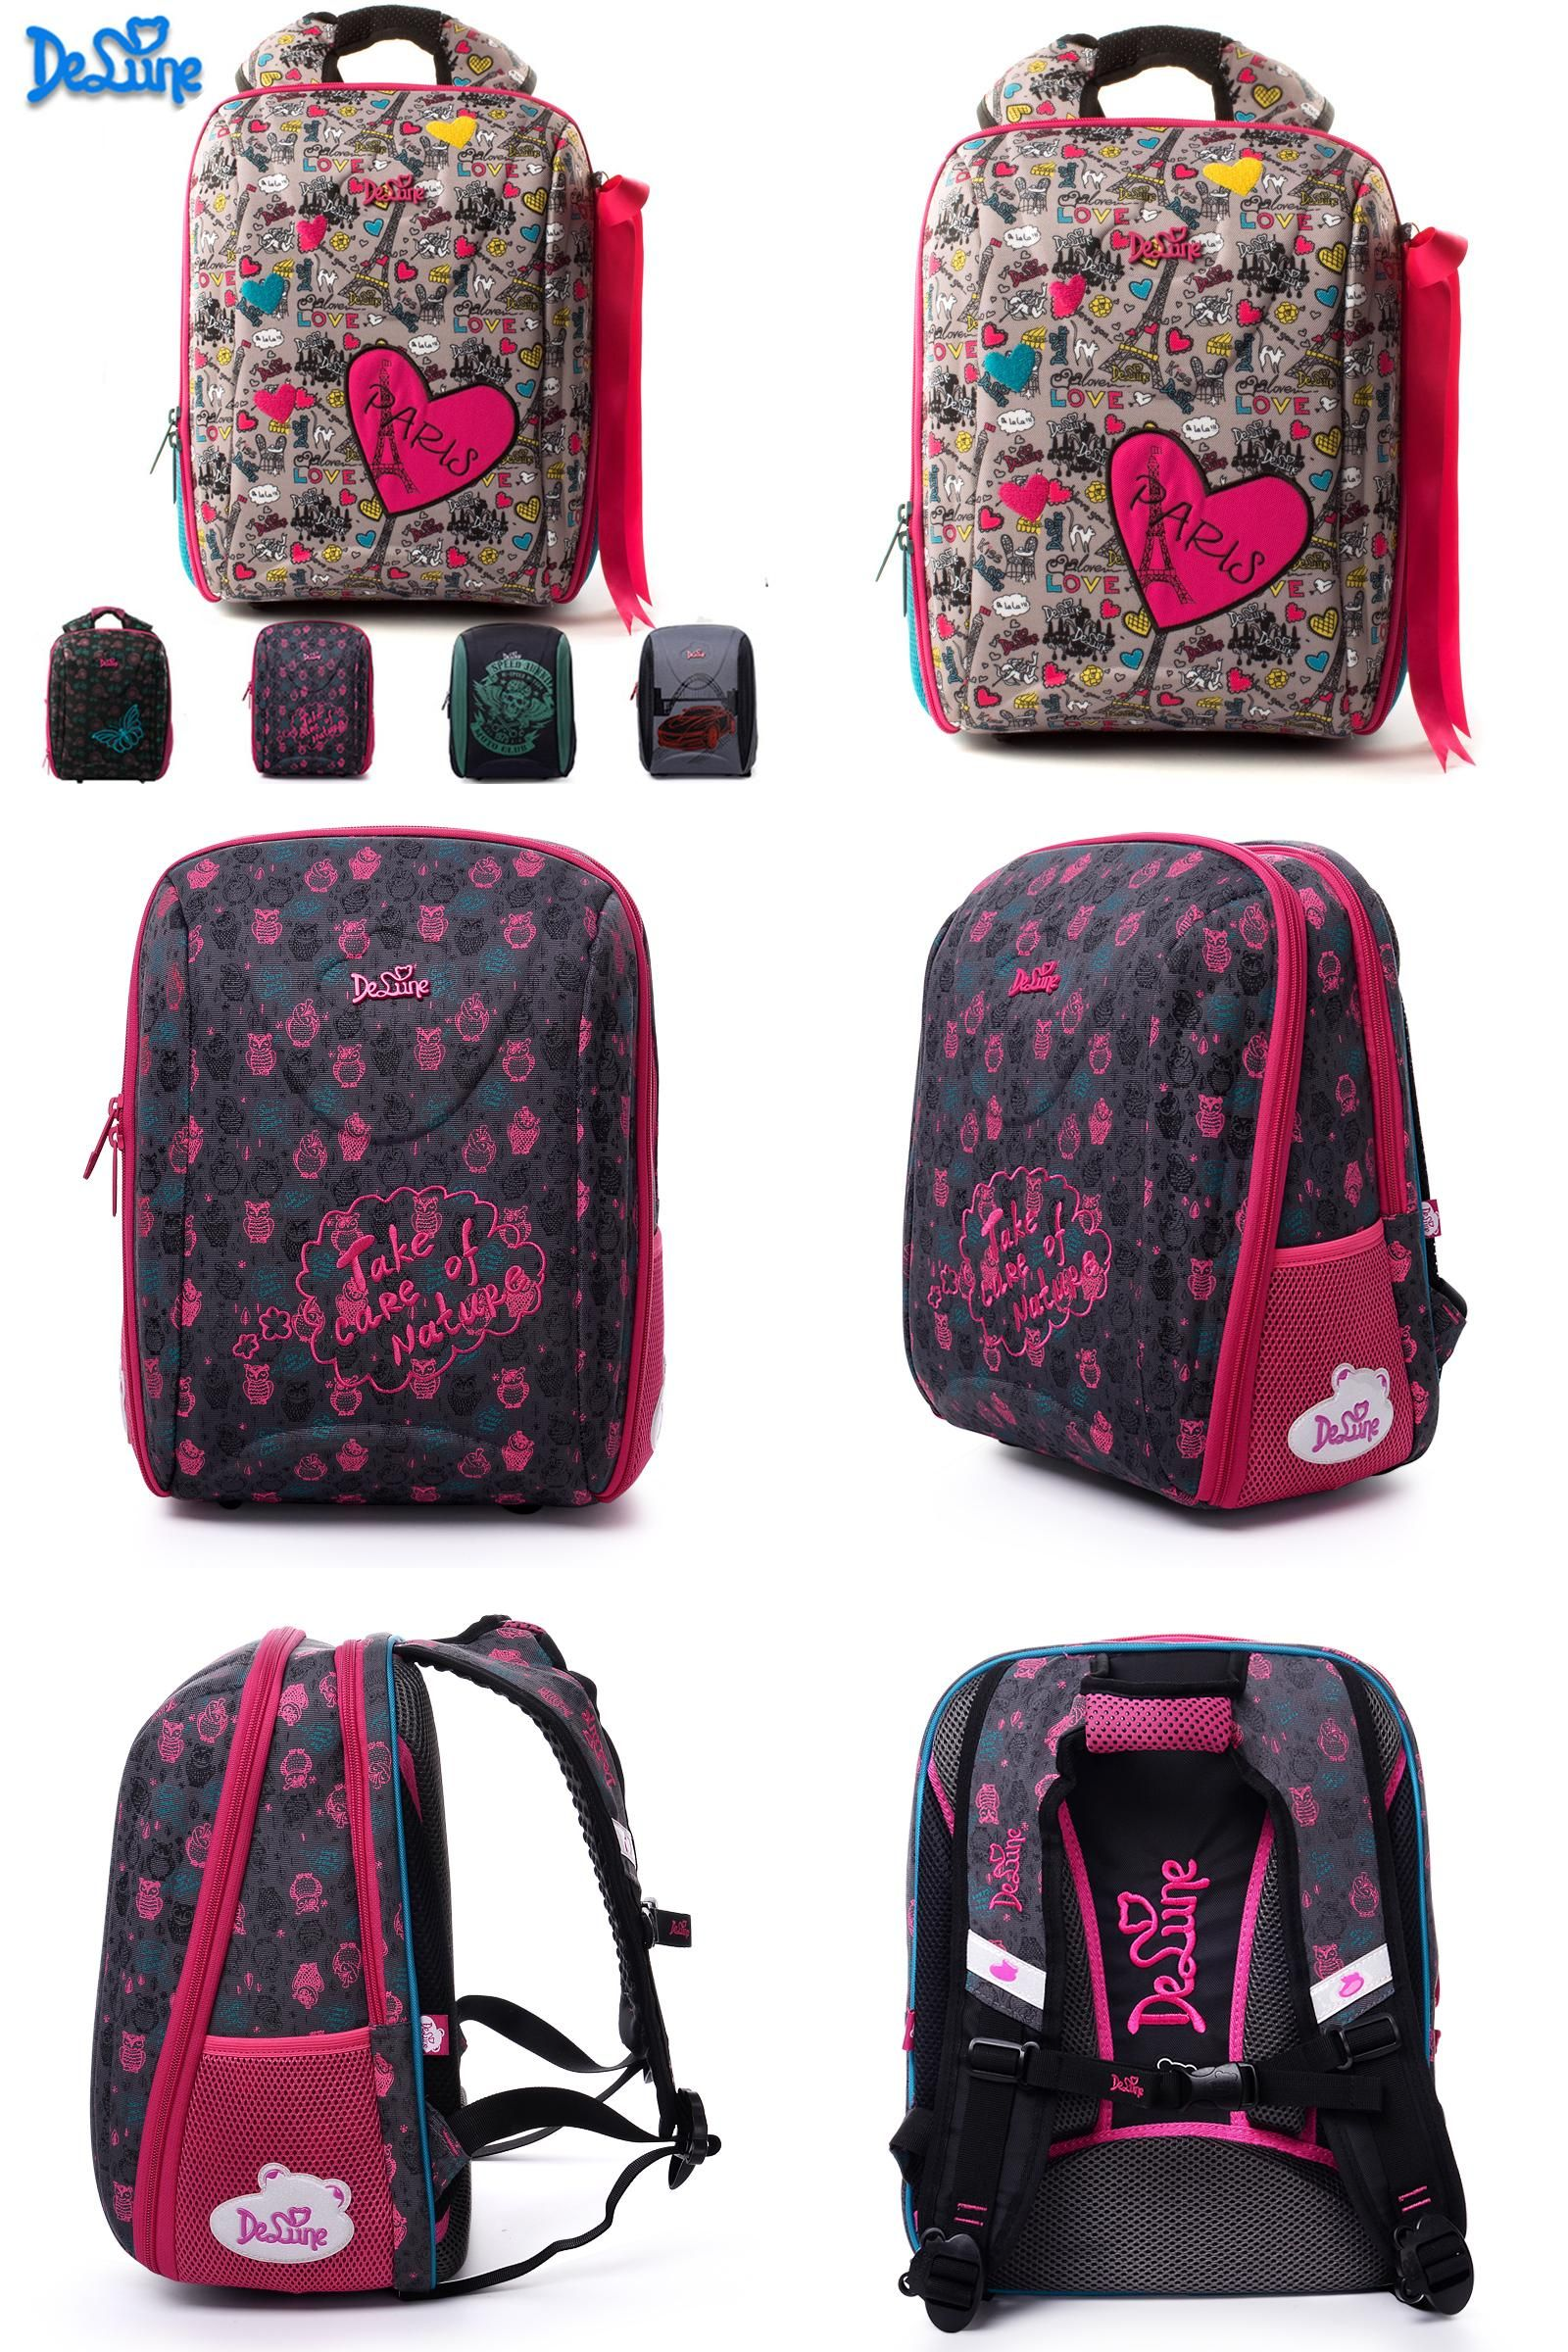 ac179be967cd  Visit to Buy  Delune Brand School Bags for Girls Boys Printing Waterproof SchoolBag  Children